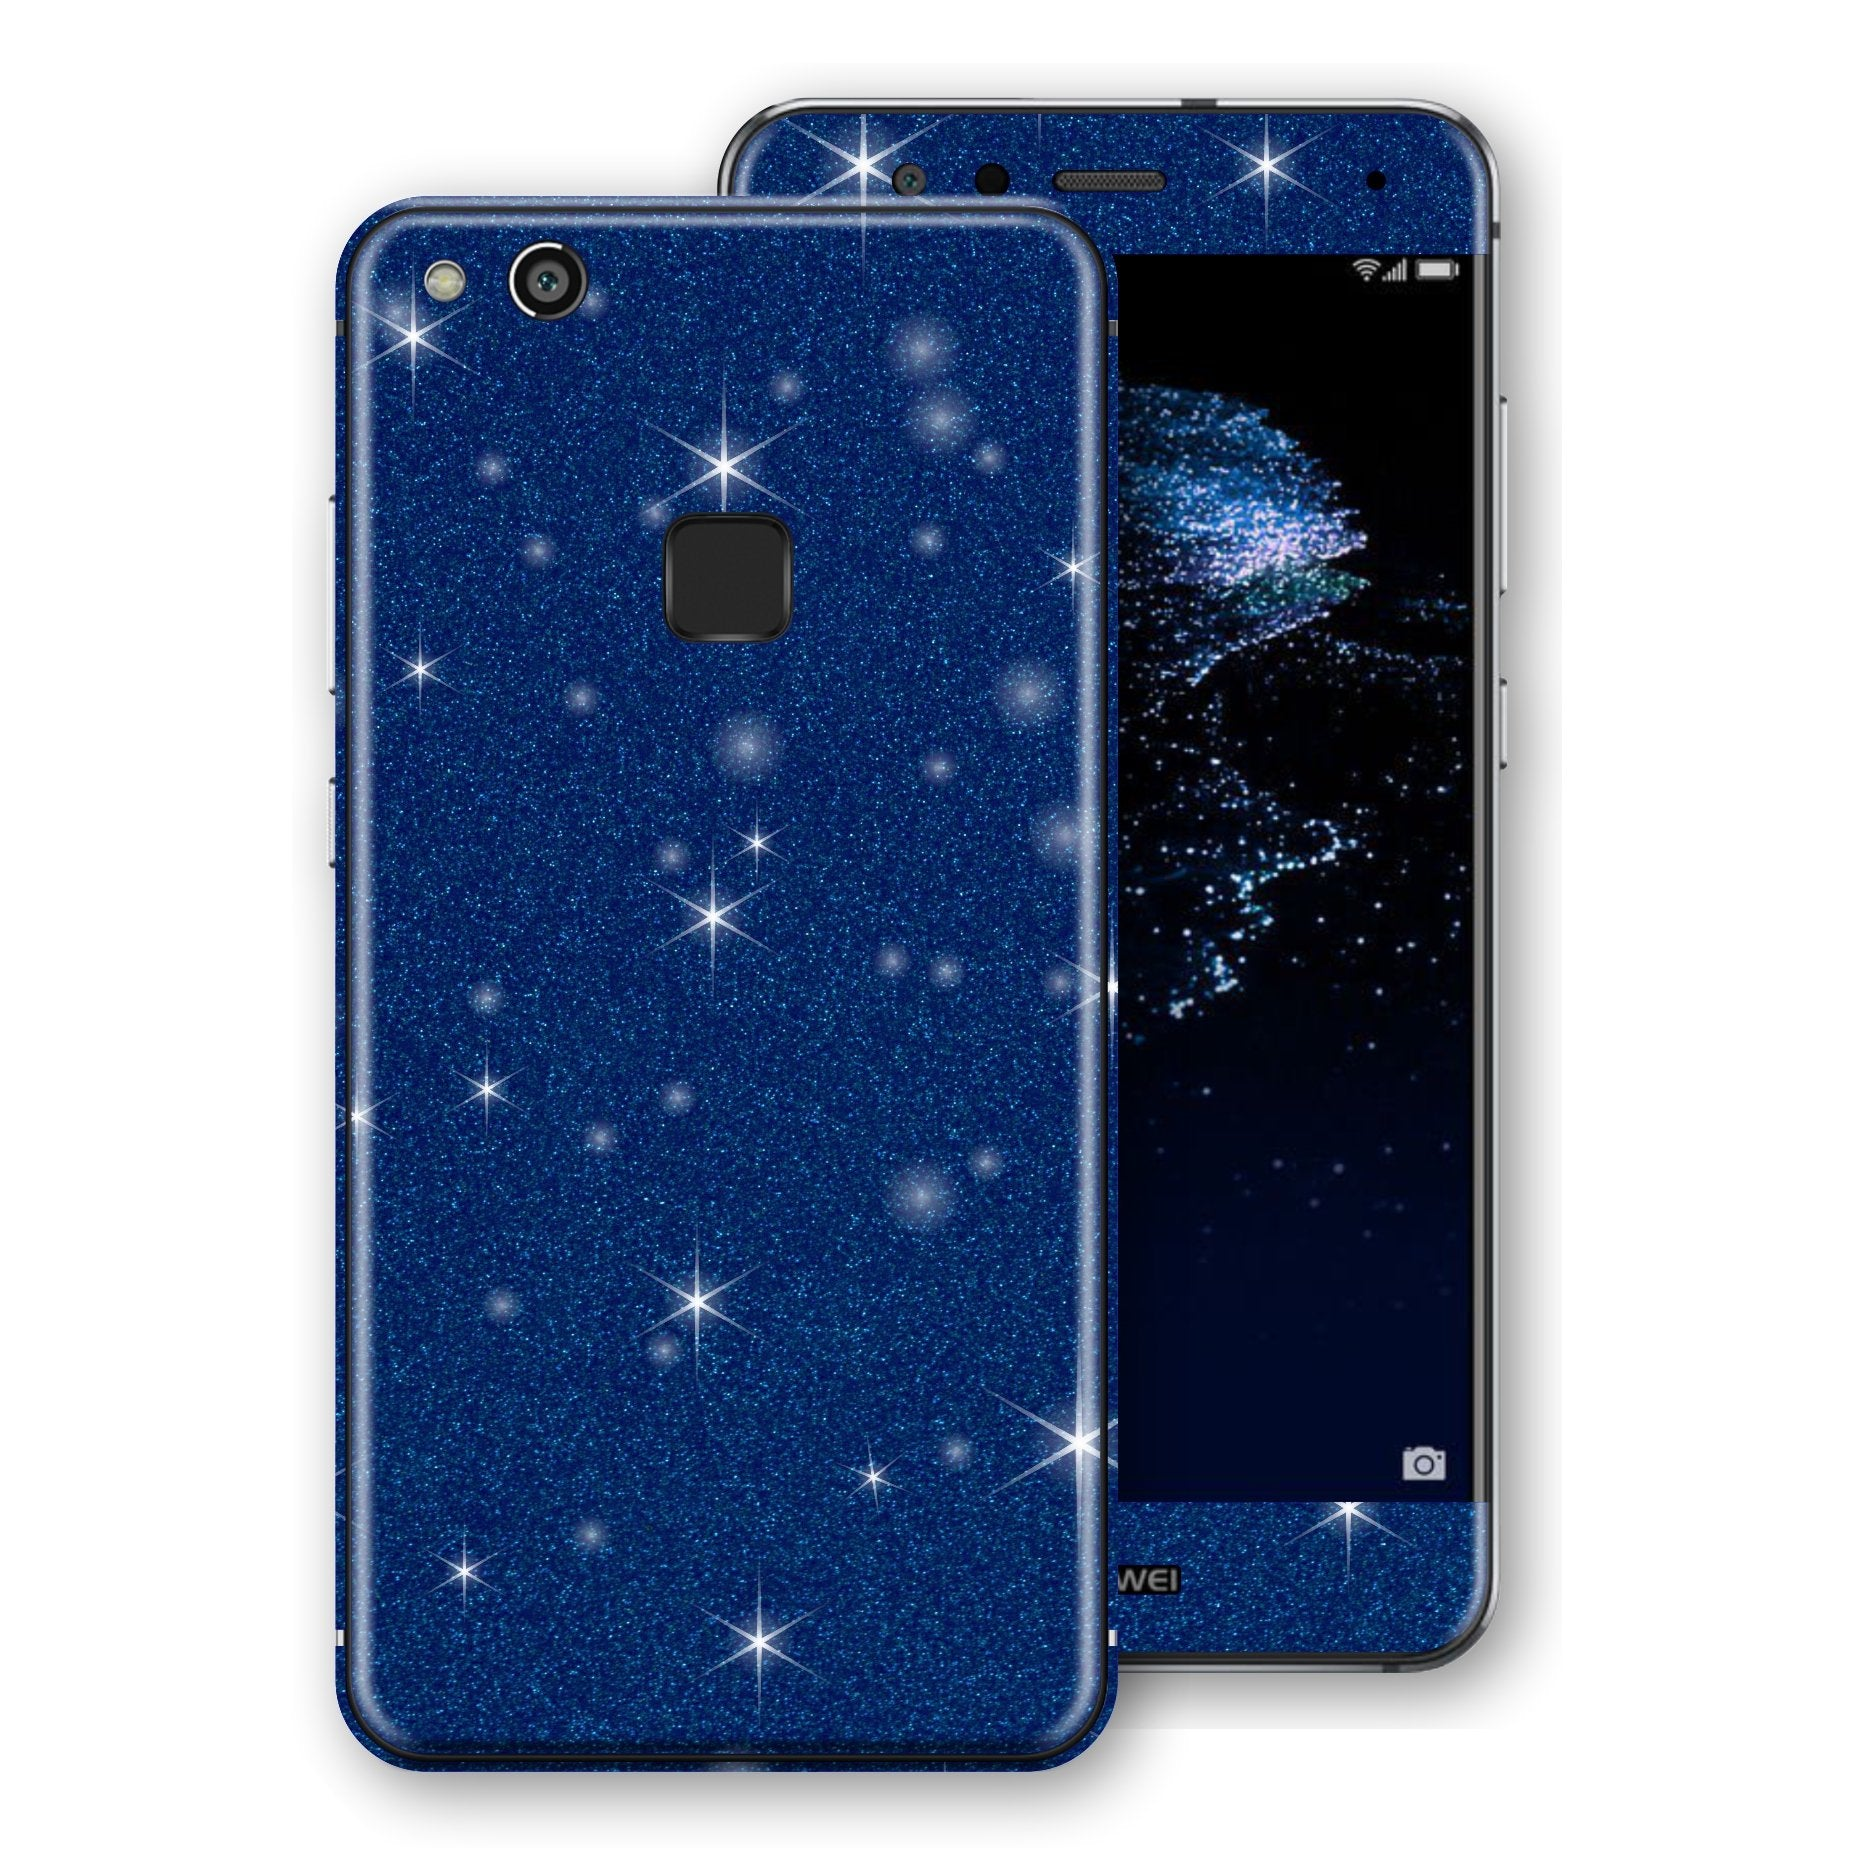 Huawei P10 LITE Diamond Blue Shimmering, Sparkling, Glitter Skin, Decal, Wrap, Protector, Cover by EasySkinz | EasySkinz.com